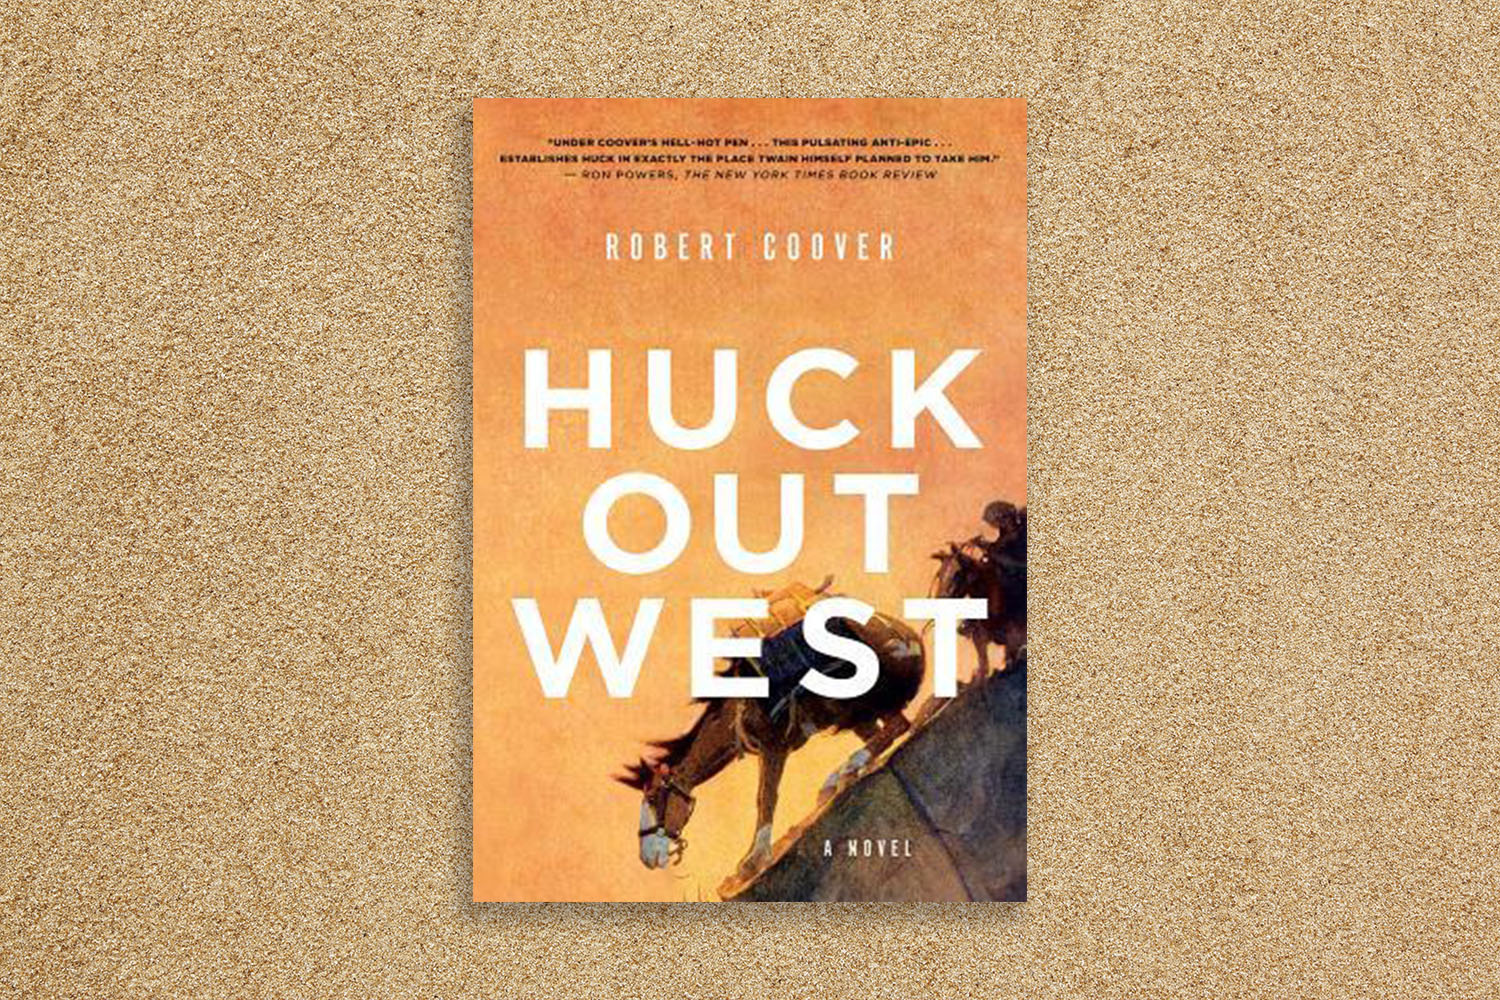 Huck Out West cover.